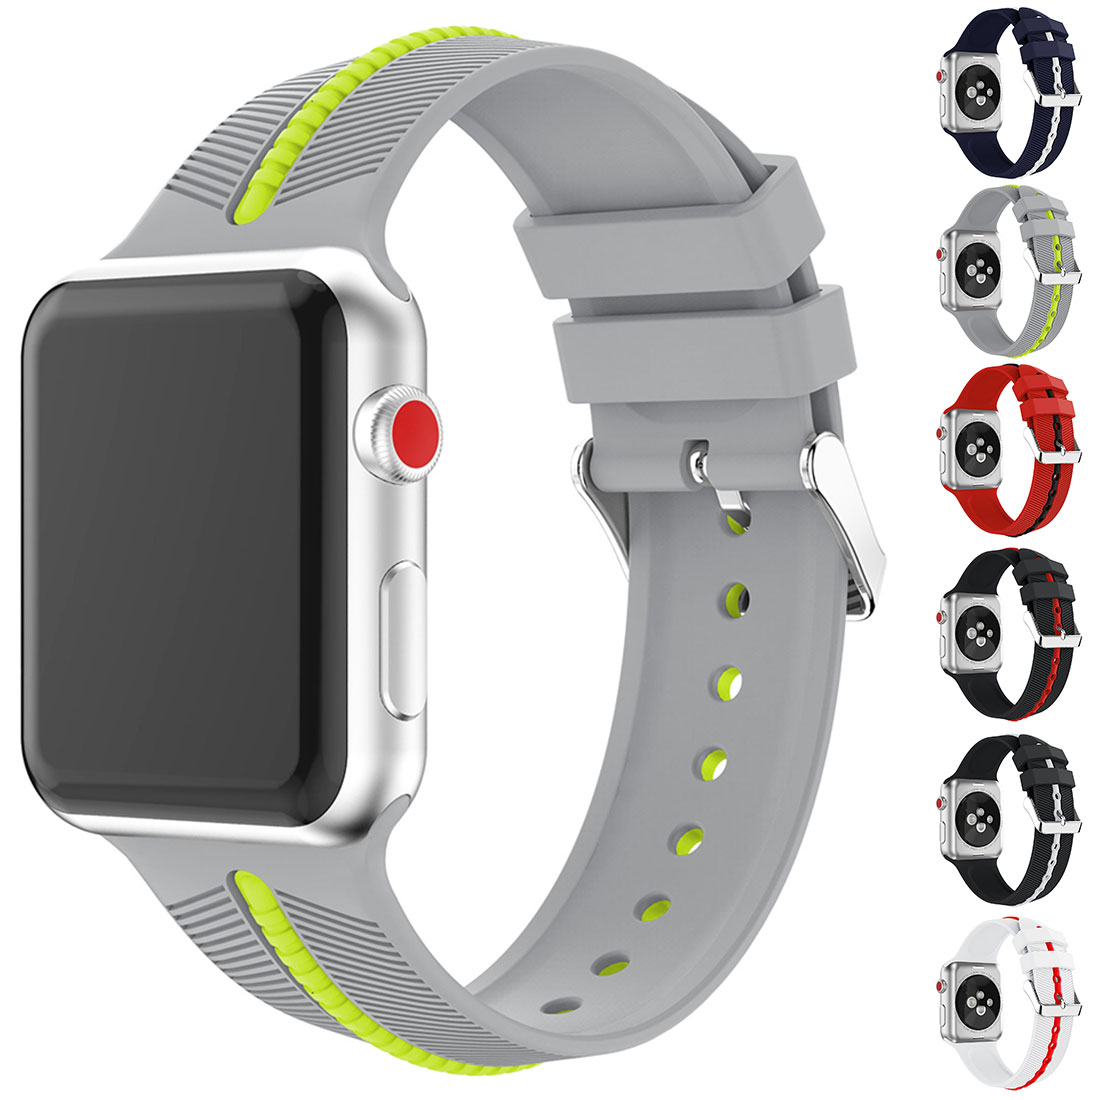 Sport Correa Bracelet Pulseira Silicone Wrist Belt Series Two-color Arrow Gel New Strap For Apple Watch Band 4 42mm